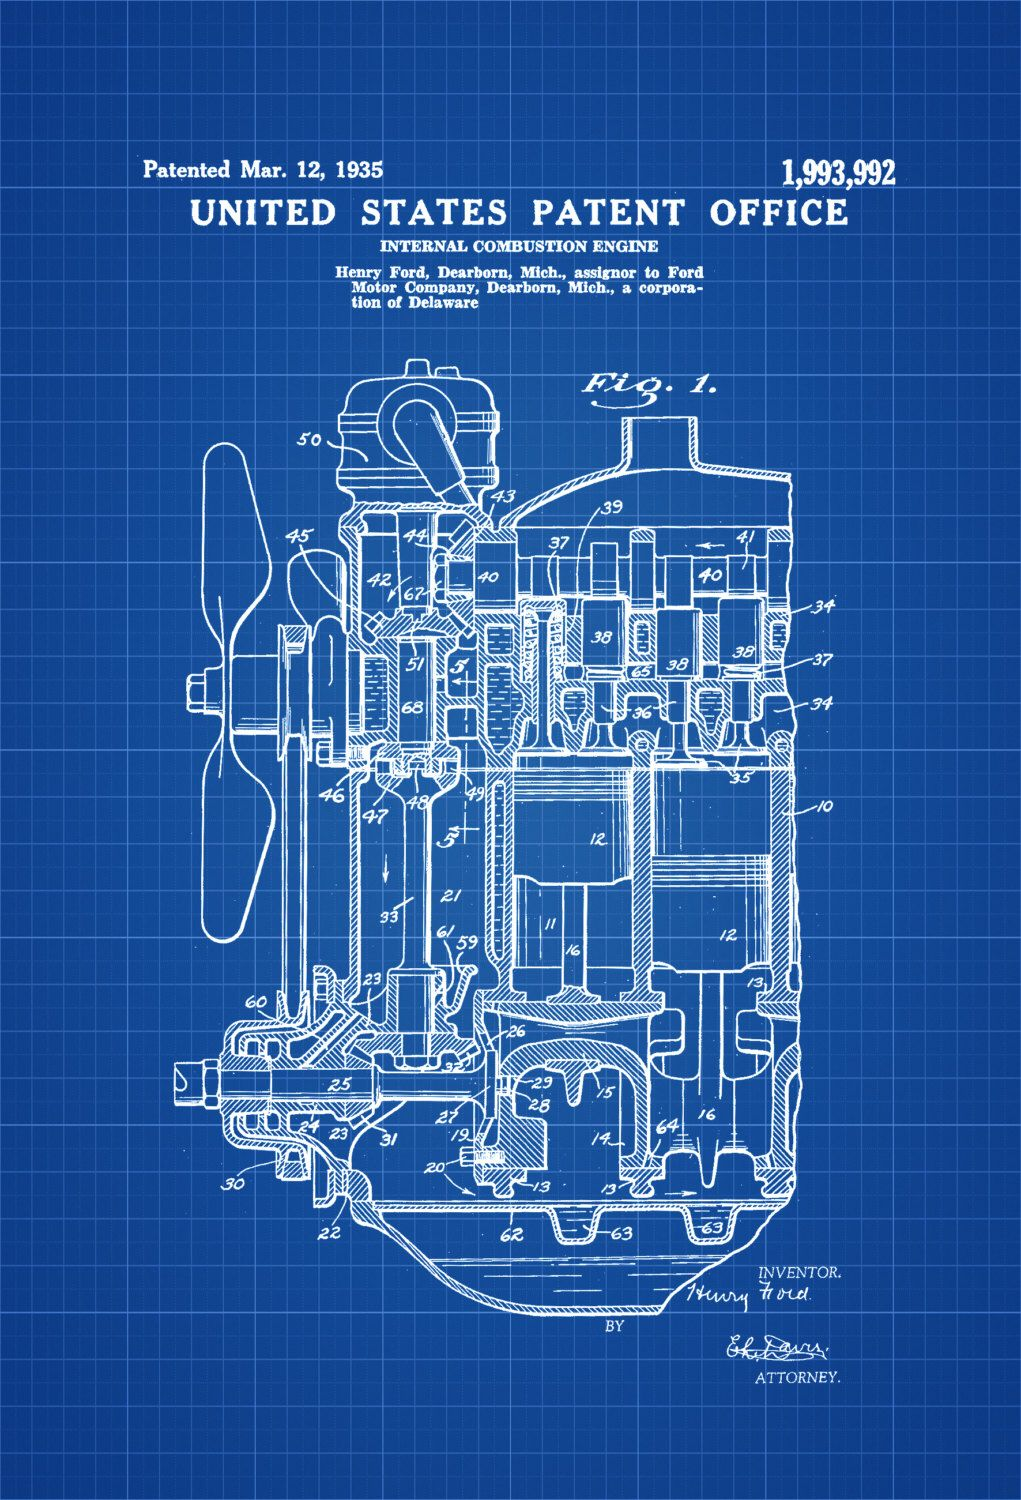 Ford Internal Combustion Engine Patent 1935 Print Wall Diagram Printable A Poster Of Invented By Henry The Was Issued United States Office On March 12